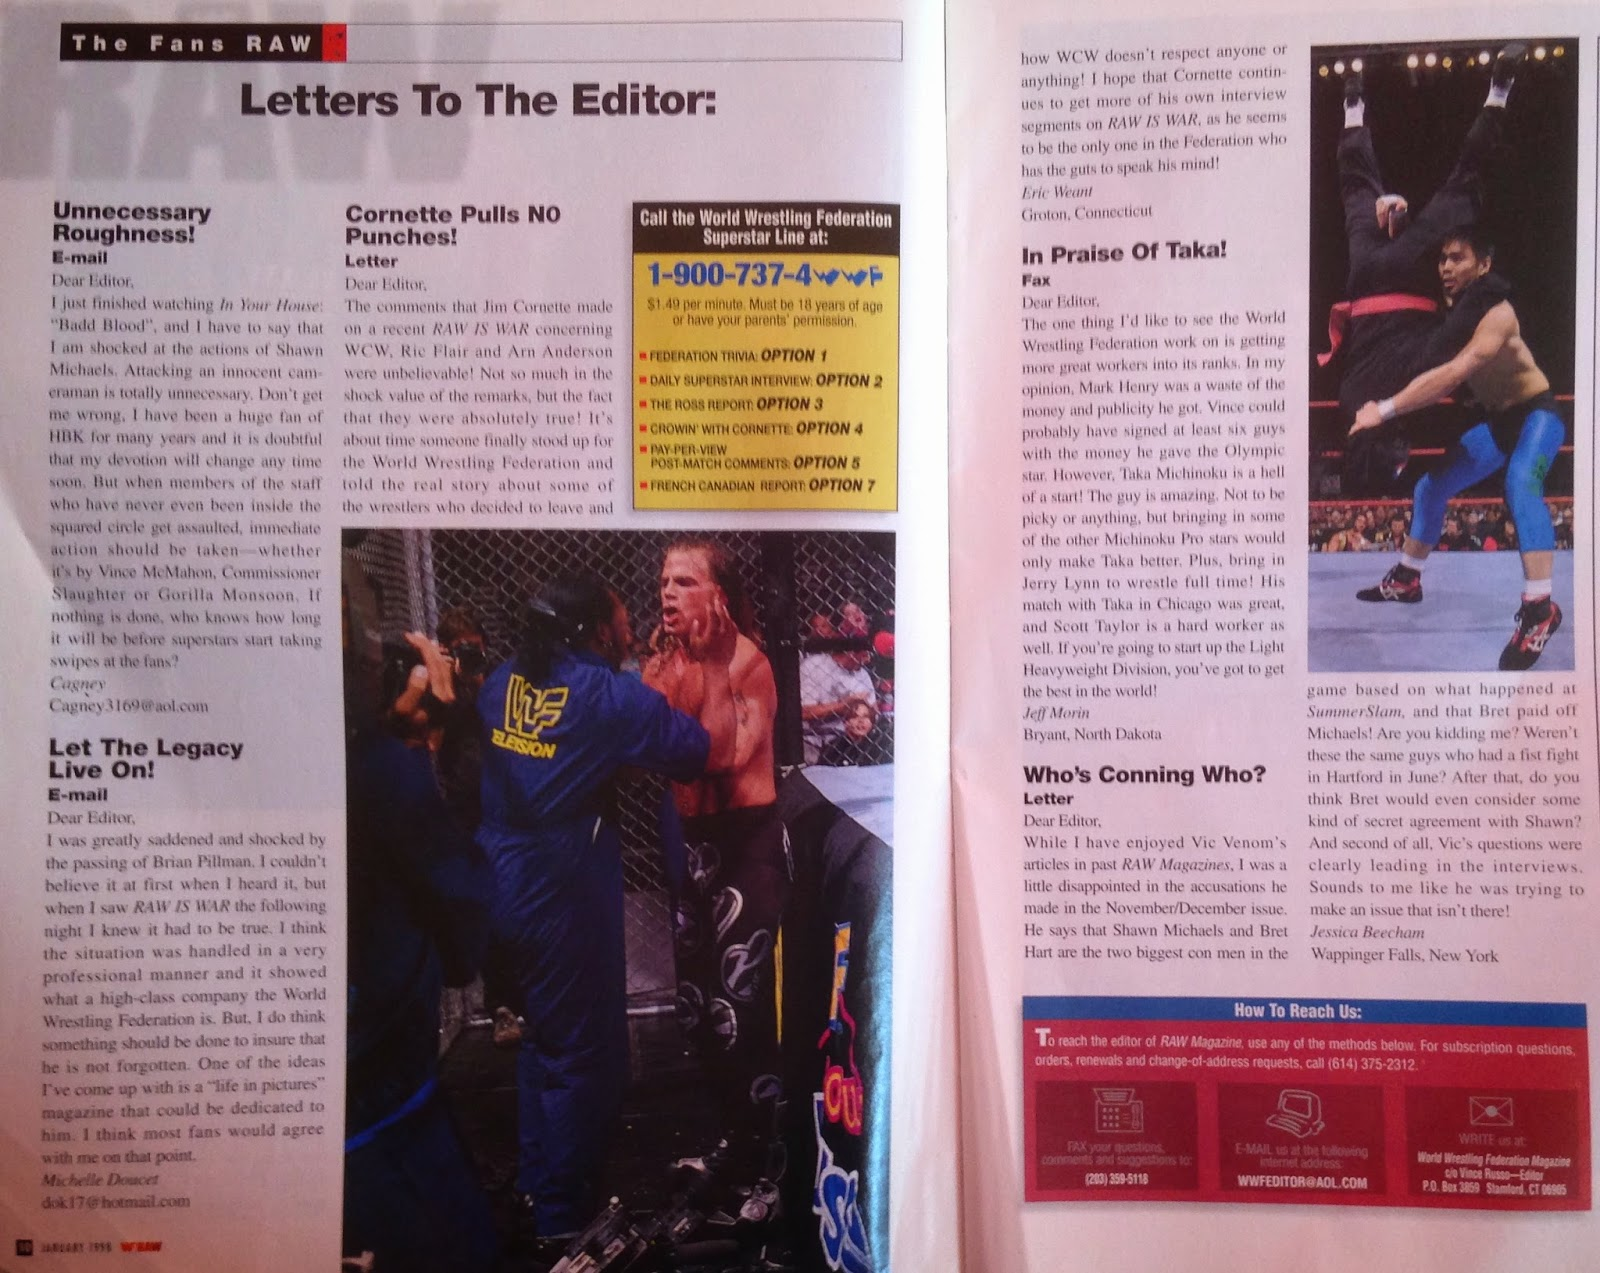 WWE: WWF RAW MAGAZINE - January 1998 - Letters to the editor